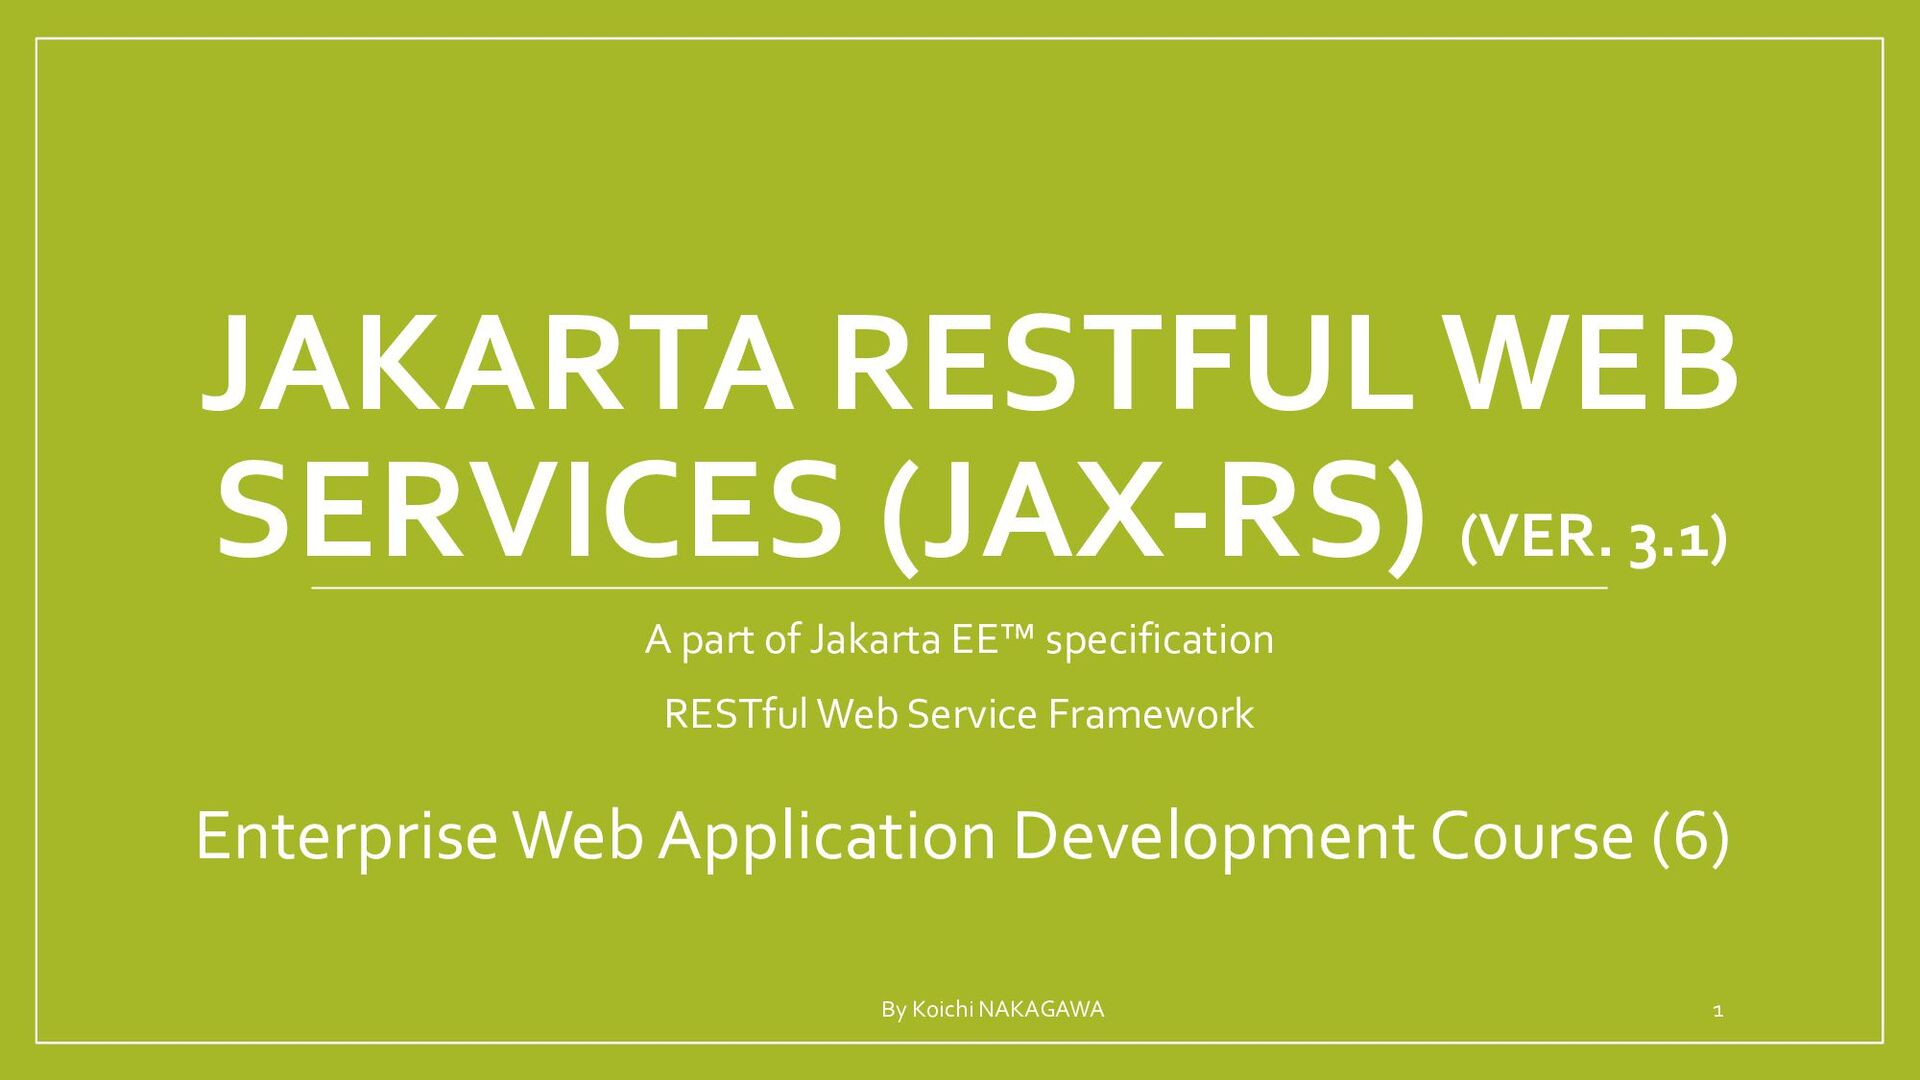 JAKARTA RESTFUL WEB SERVICES (JAX-RS) A part of...